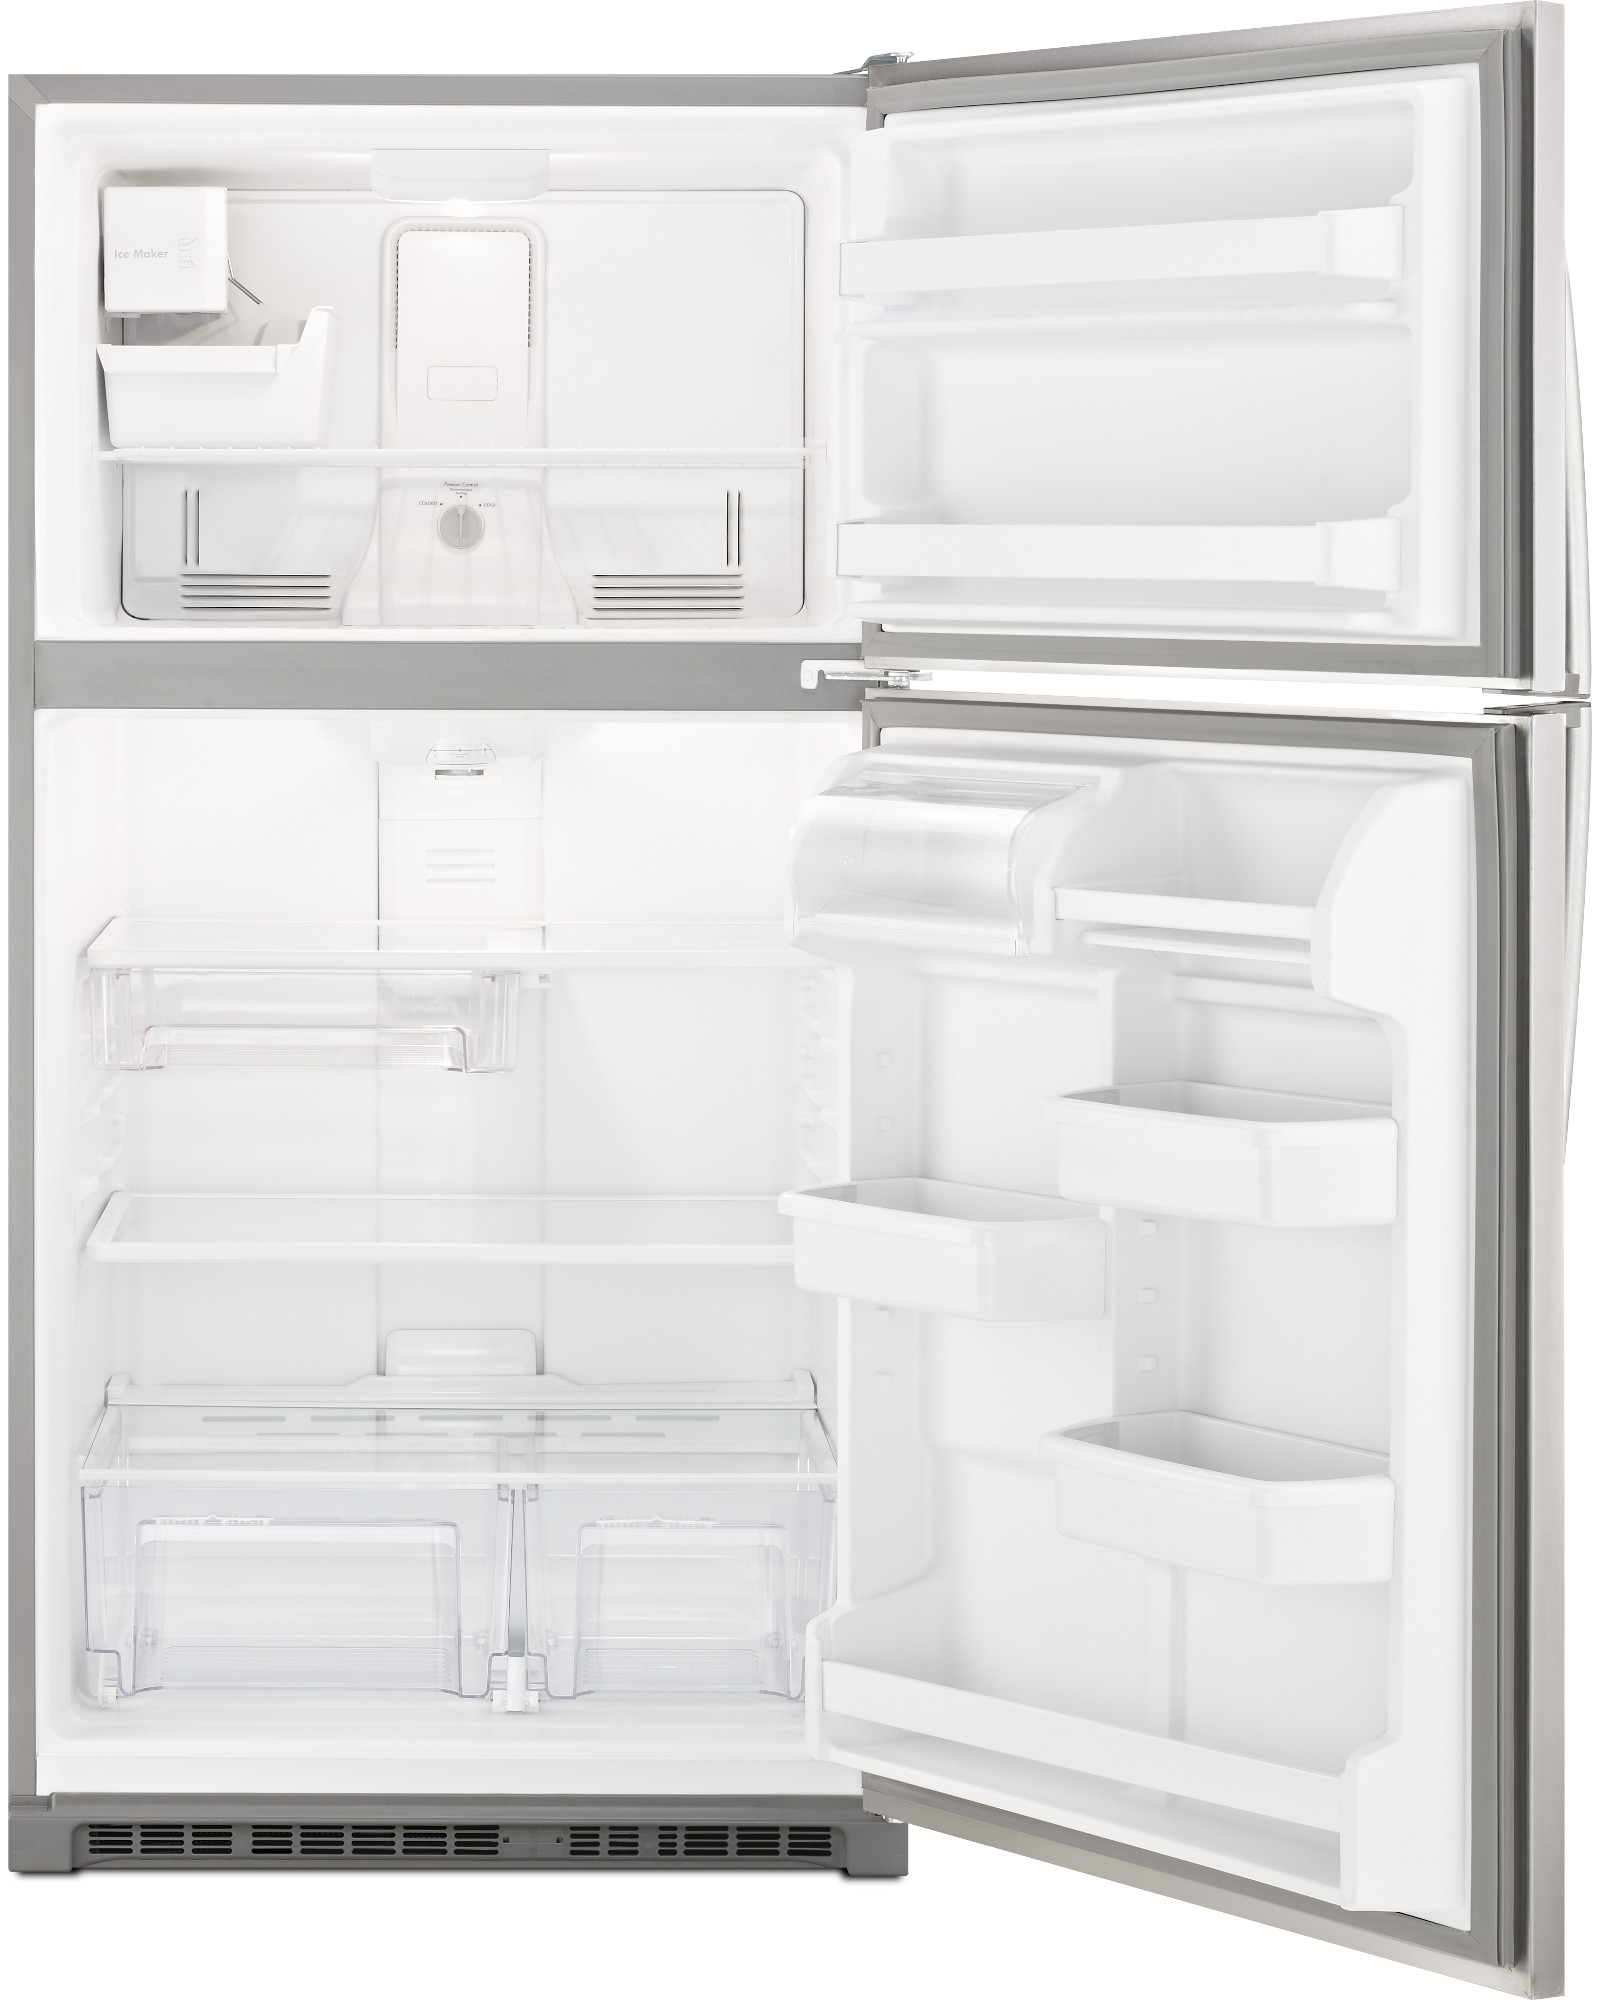 "Kenmore 20.5 cu. ft. 33"" Top Freezer Refrigerator w/ Ice Maker - Stainless Steel"